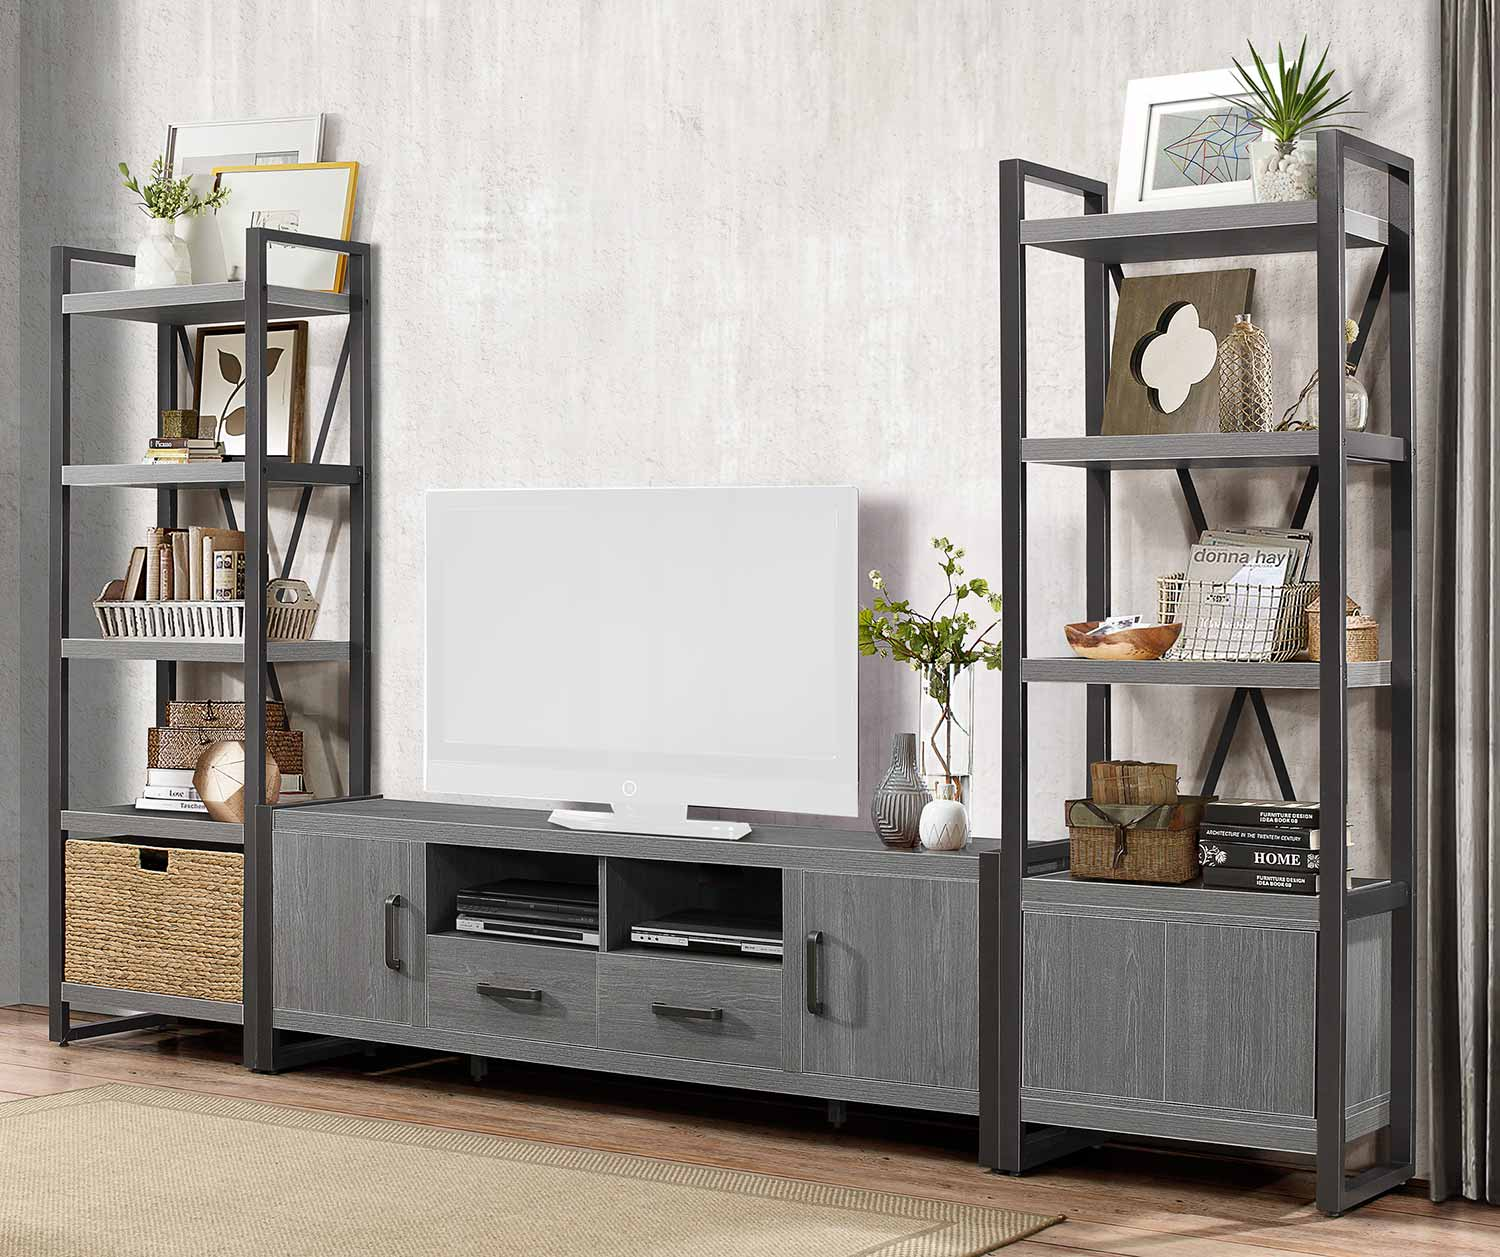 Homelegance Dogue 76-inch Entertainment Center Set - Gunmetal - Gray